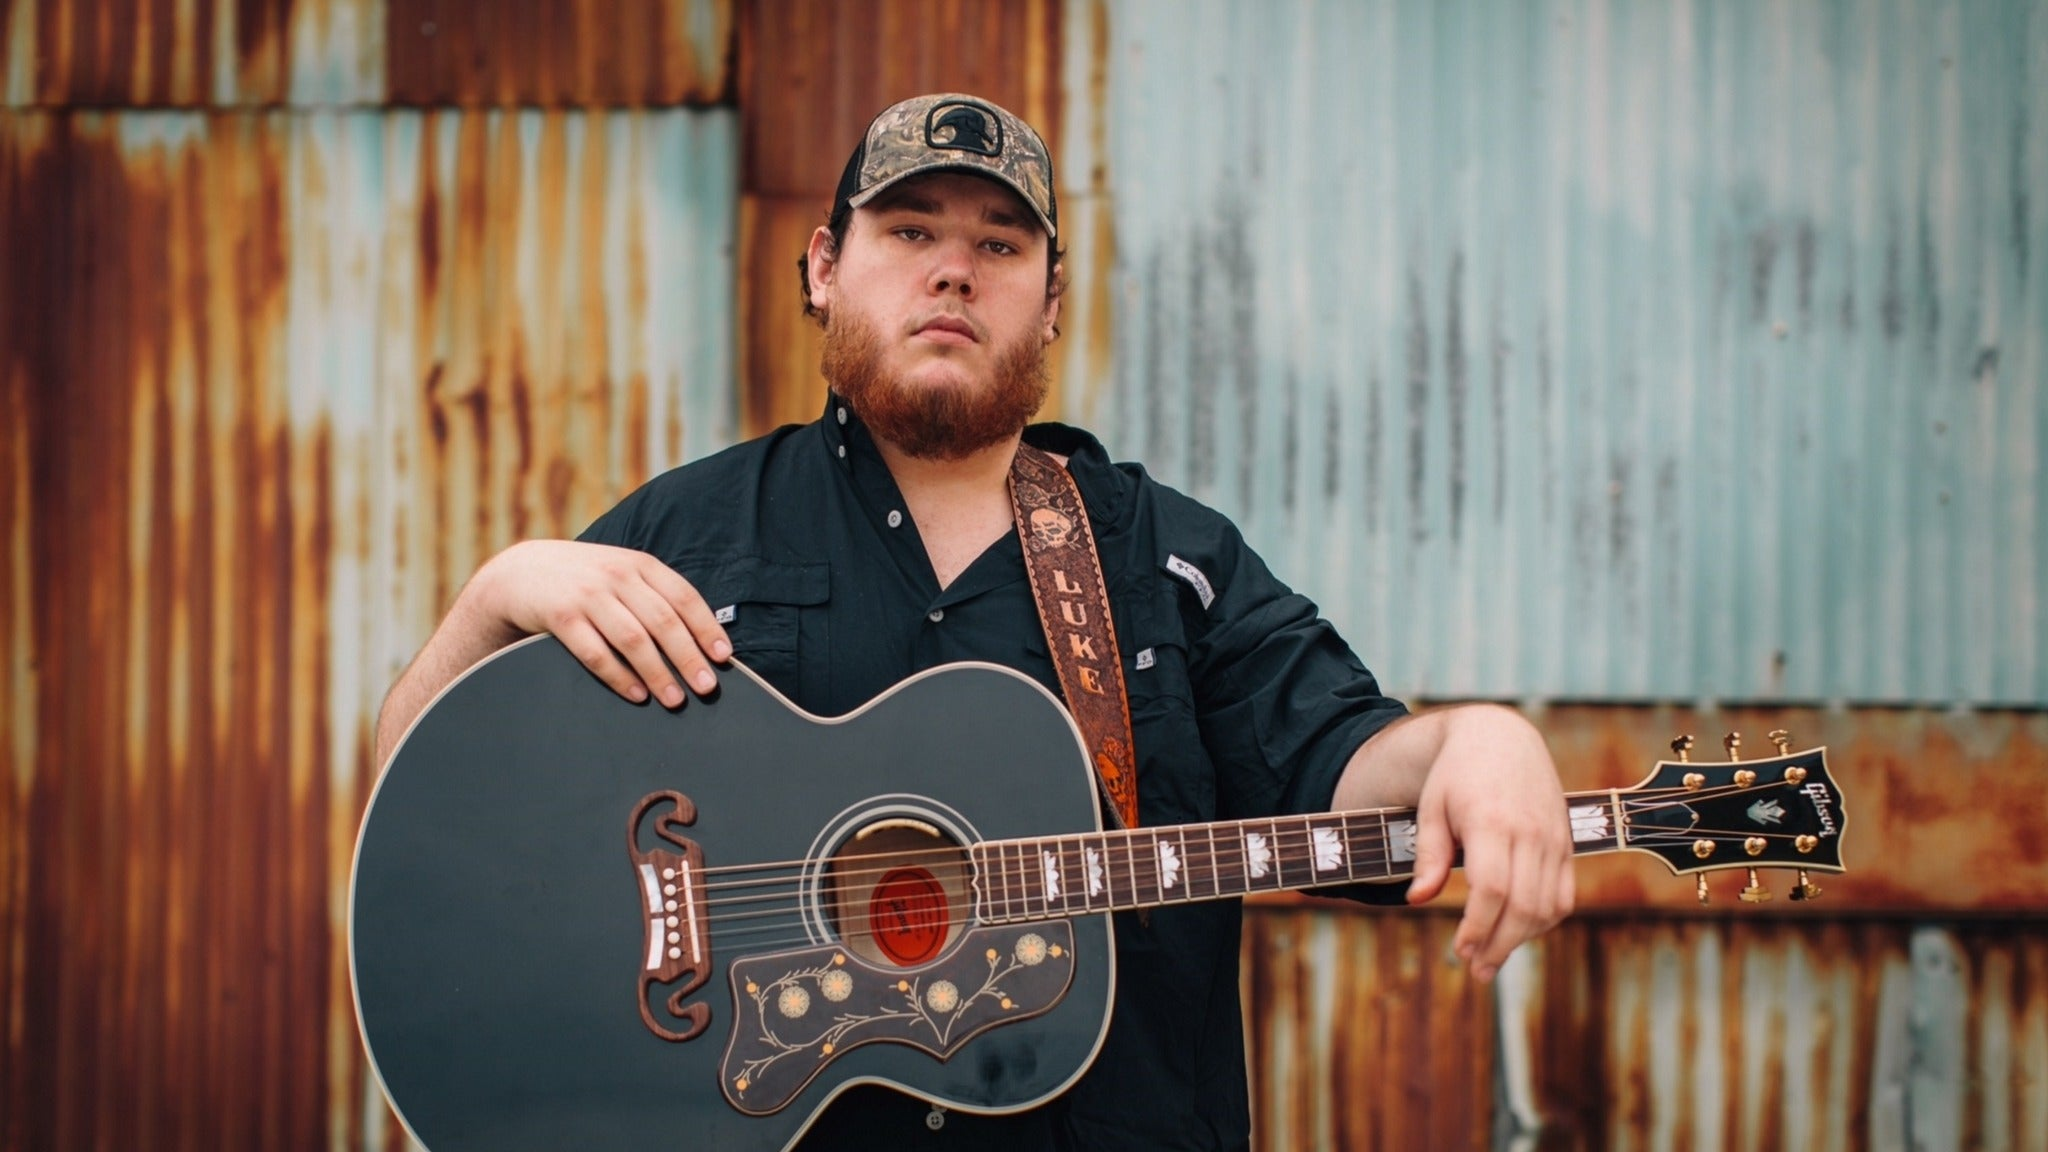 Luke Combs at Buckhead Theatre - Atlanta, GA 30305